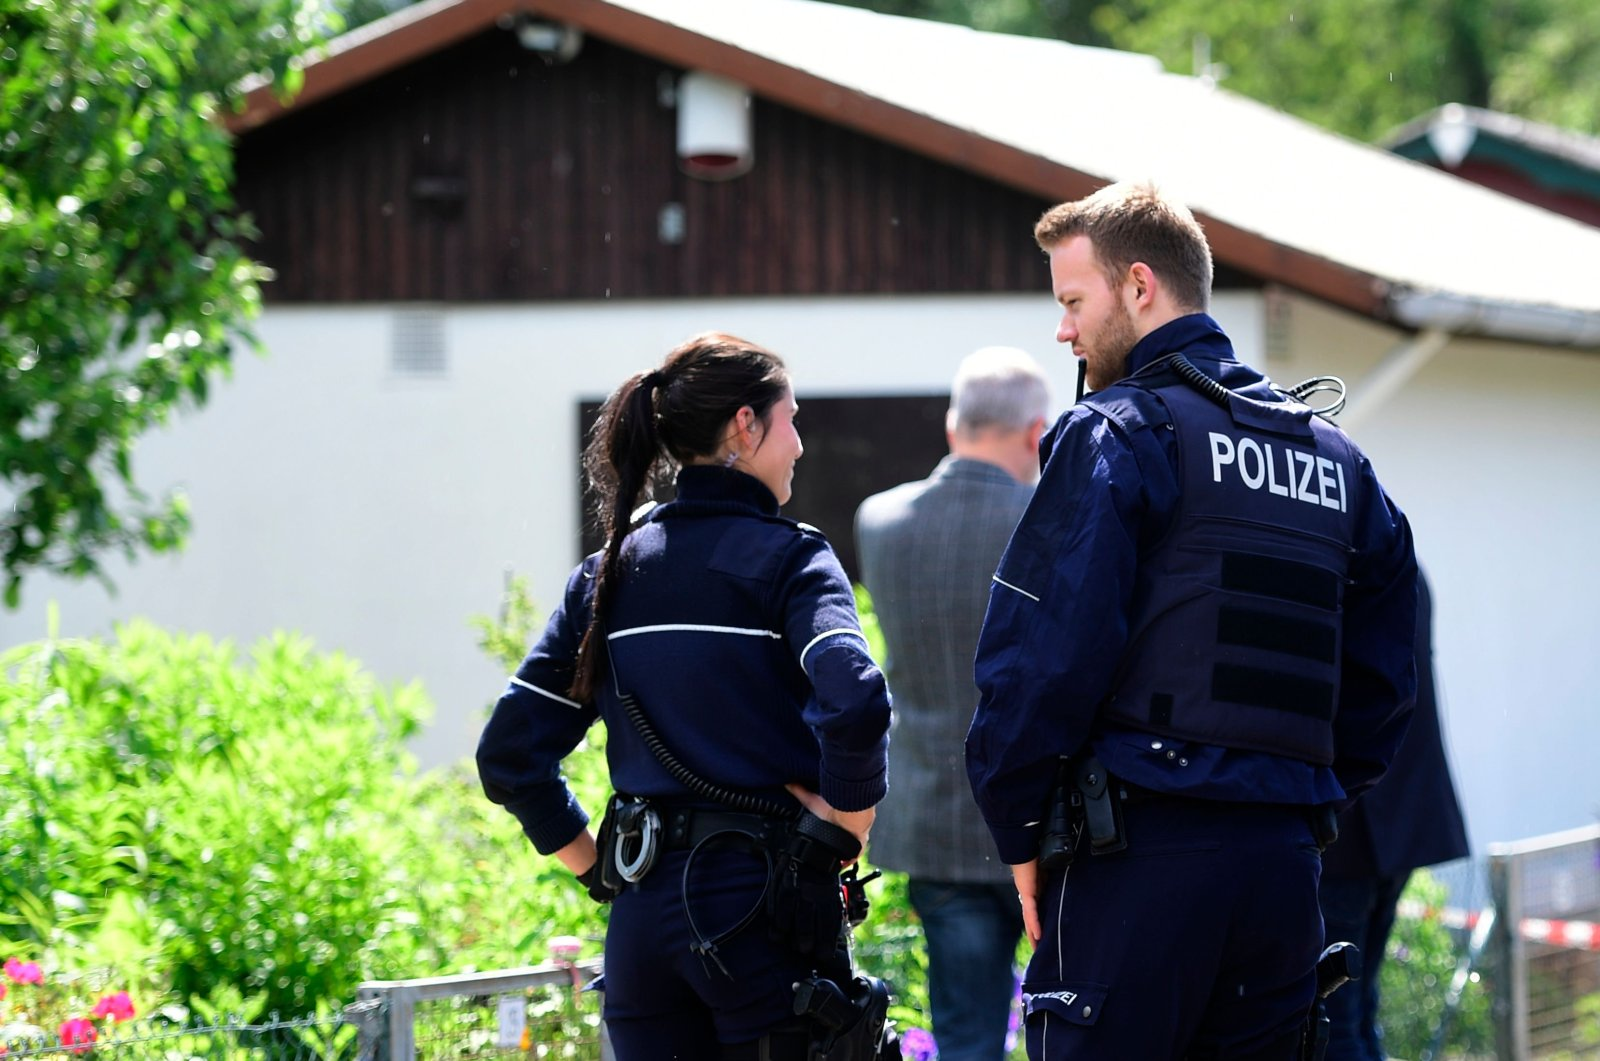 Police officers stand in front of a summer house where the sexual abuse of children is suspected to have taken place in Muenster, western Germany on June 6, 2020. (AFP Photo)